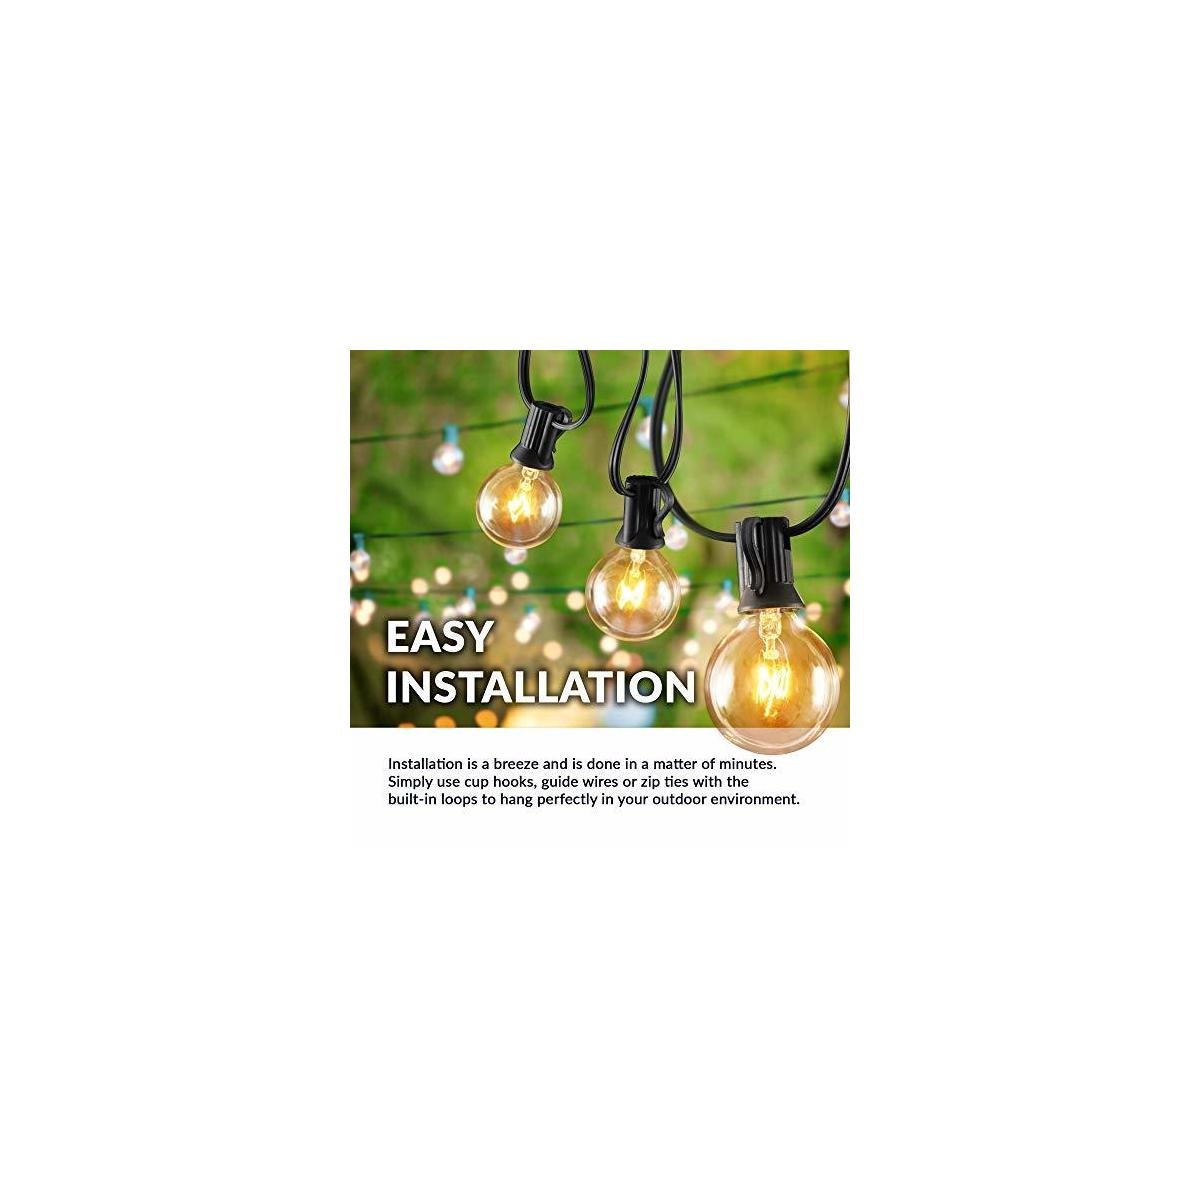 Newhouse Lighting PSTRINGINC50 Foot 50 Socket Indoor/Outdoor String 55 Incandescent Globe G40 (5 Free Bulbs Included), Wedding Lights, Decorations for Patios, Porches, Backyards, Decks, Bistros, 50ft